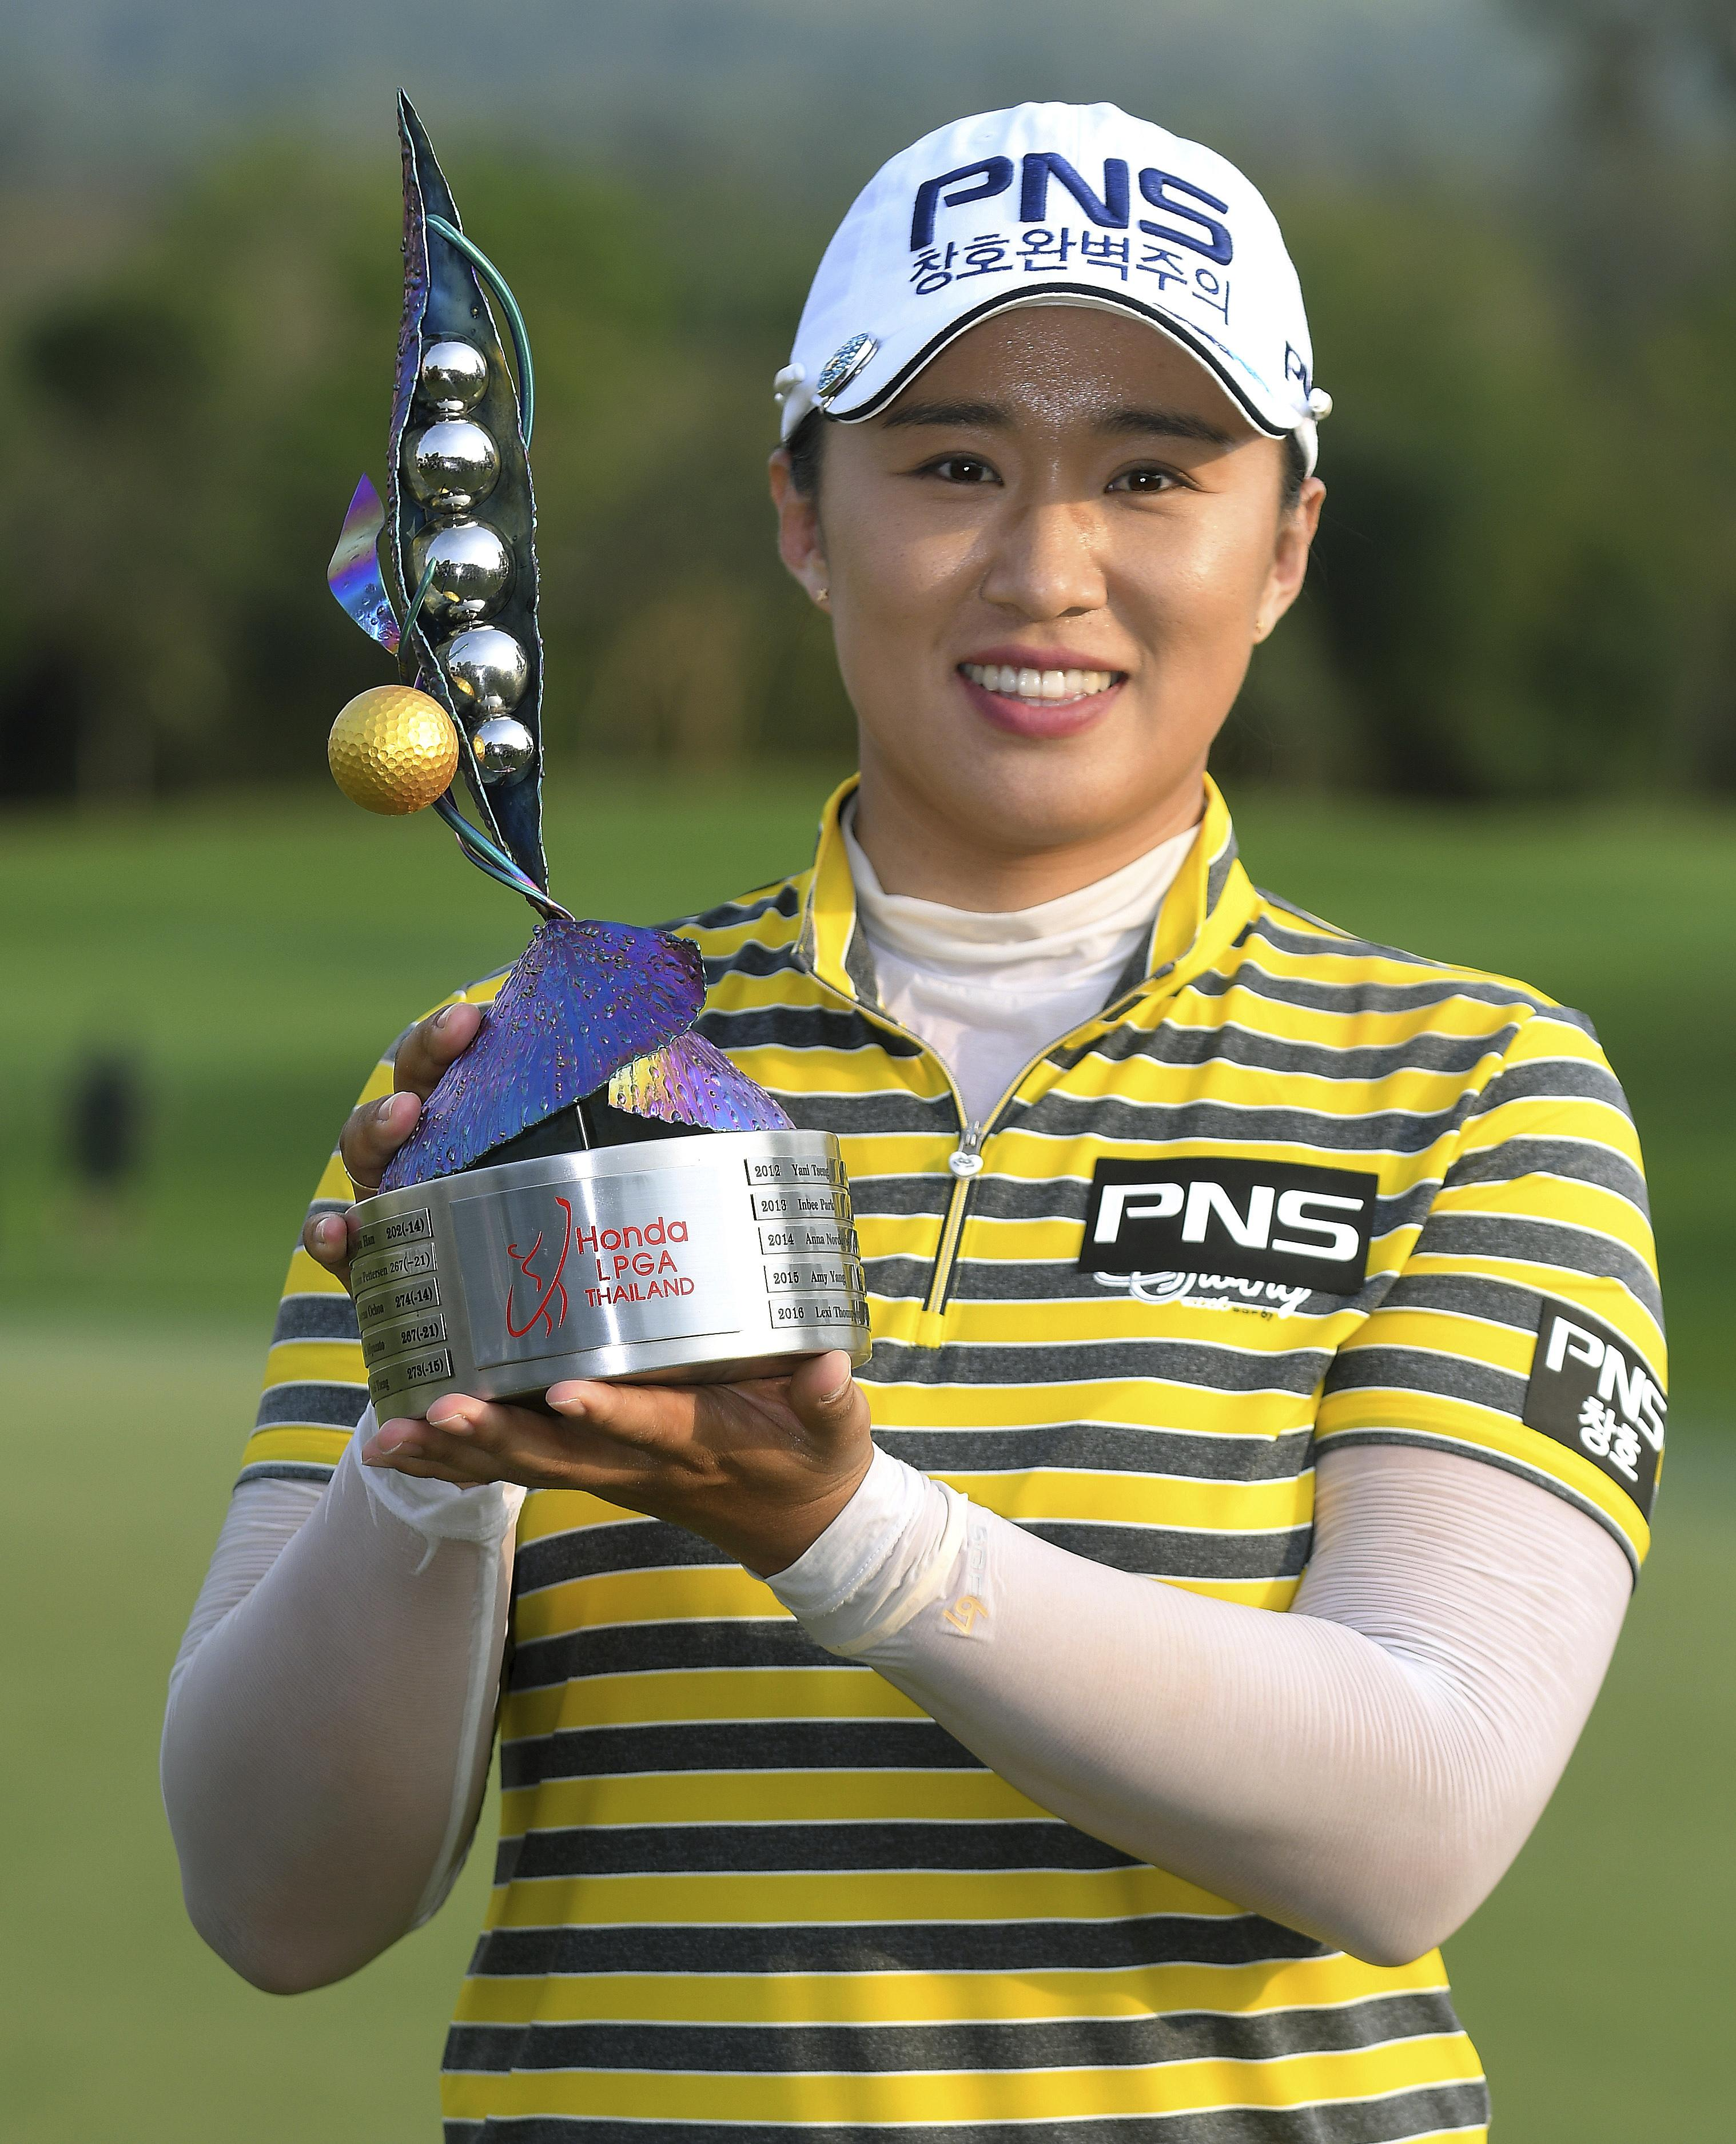 Amy Yang Leads By 5 Strokes Into Final Round Of Lpga Thailand The